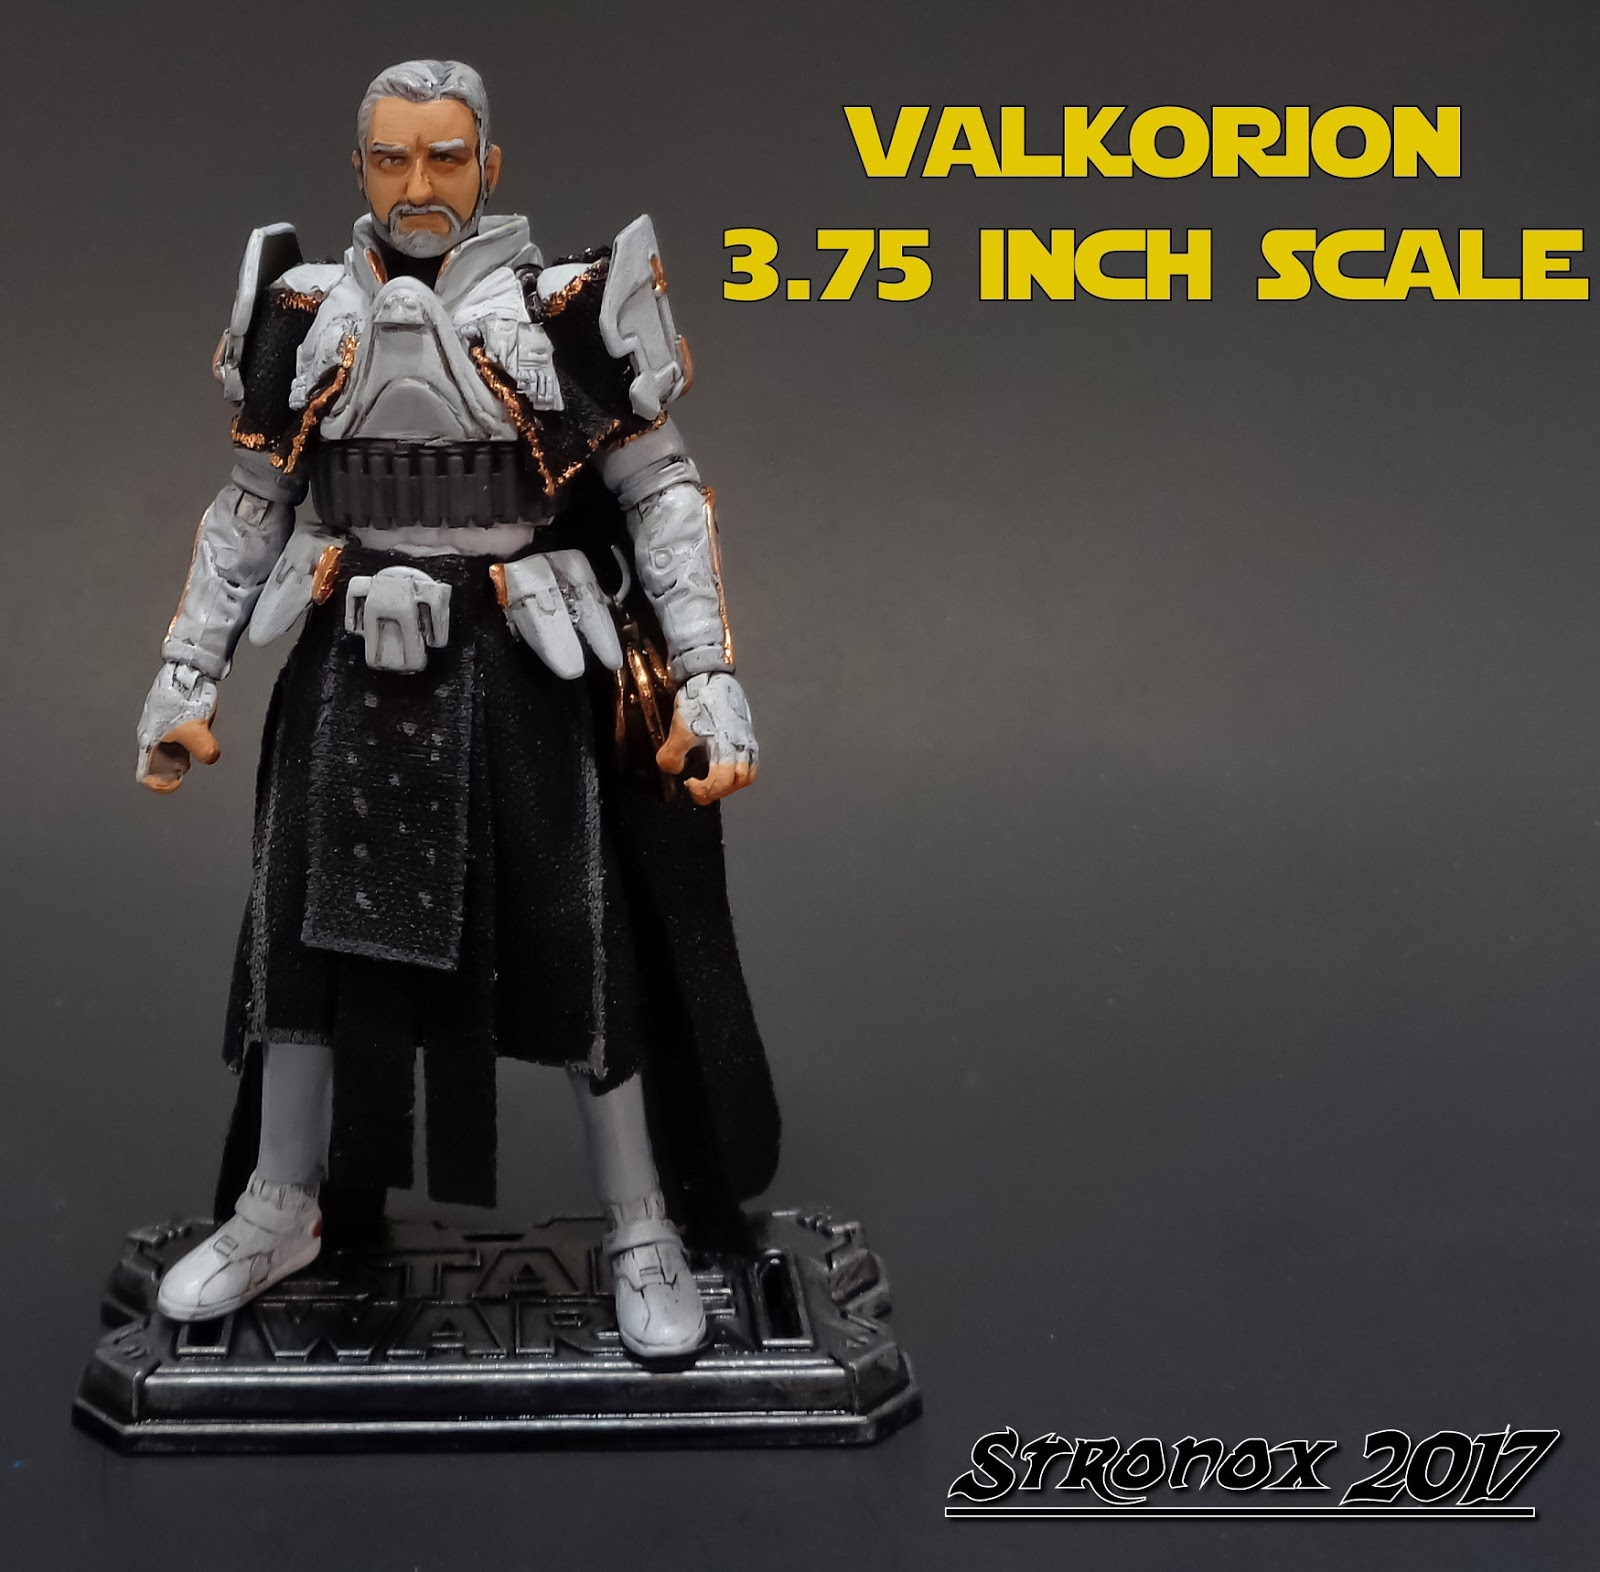 Stronox Custom Figures Star Wars Valkorion Will he in the end force my character to kill someone? stronox custom figures star wars